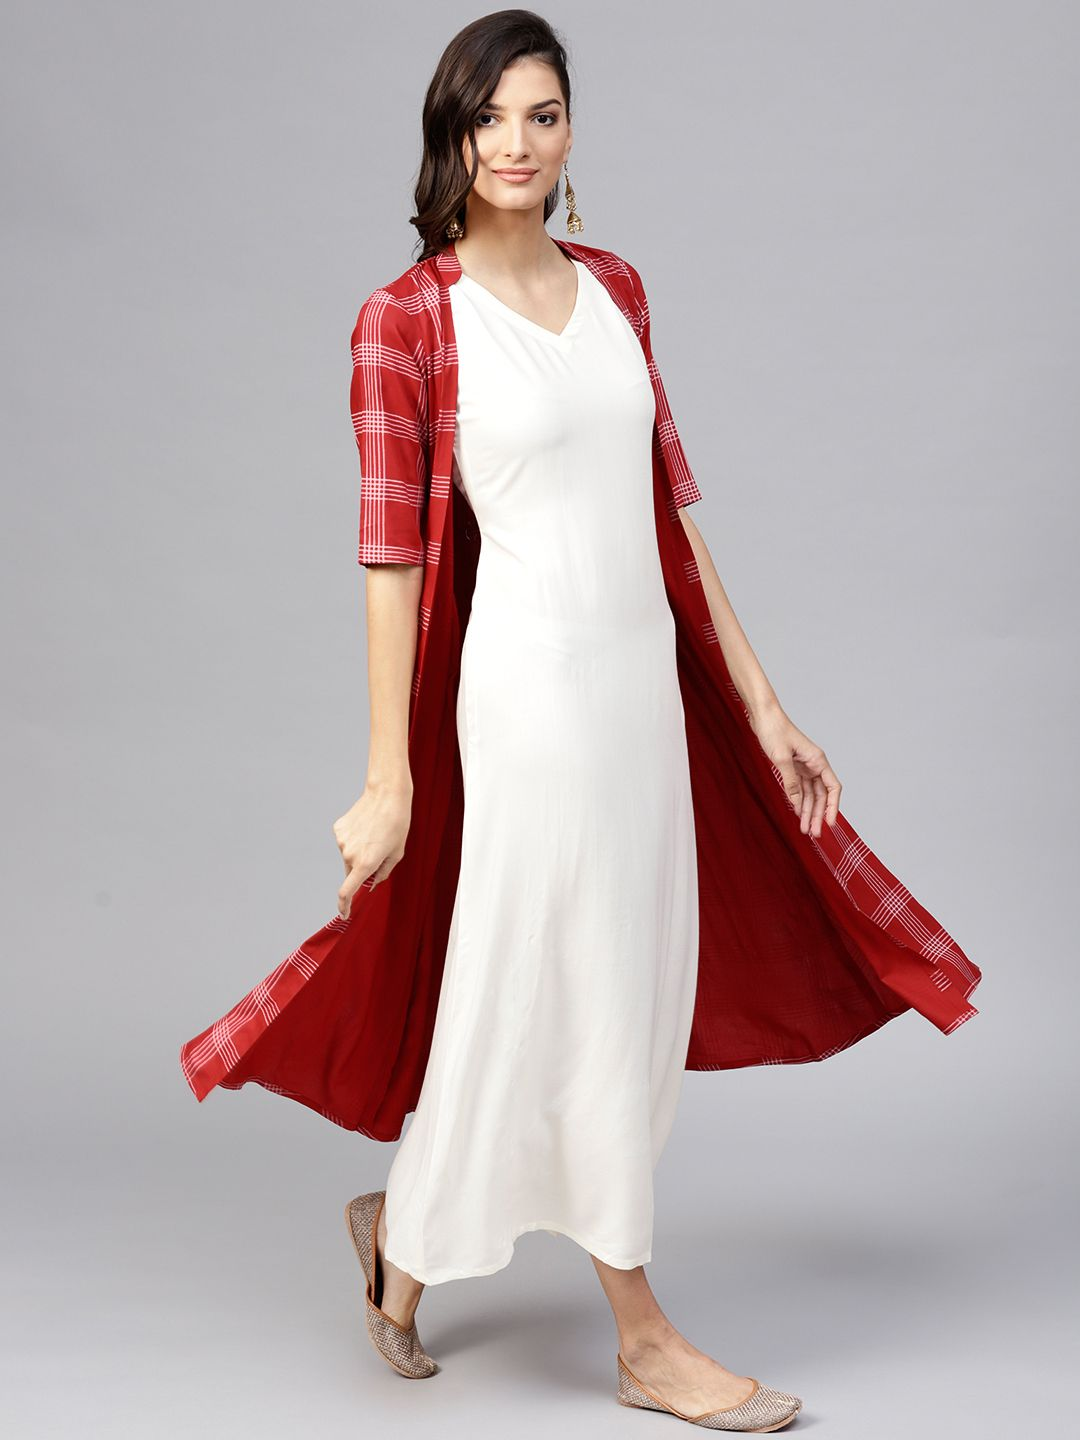 3016ff6a5b2 Buy Libas Women Off White   Red Solid Maxi Dress - Dresses for Women  7719027